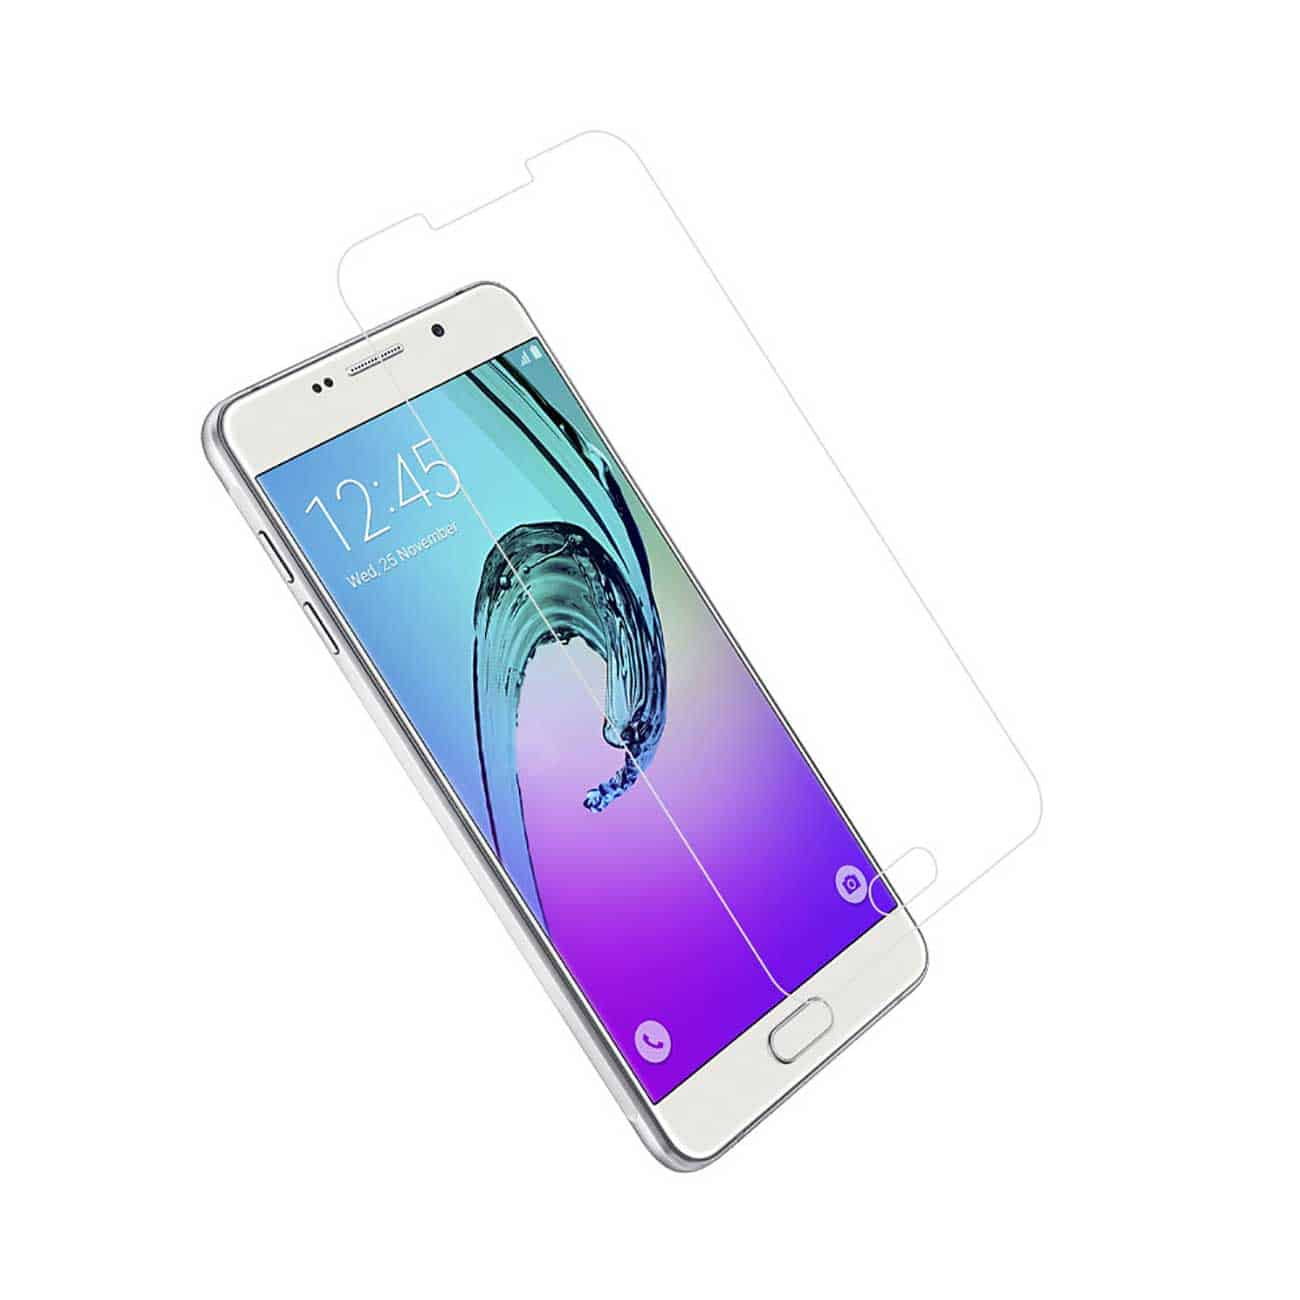 SAMSUNG GALAXY A7 (2016) TEMPERED GLASS SCREEN PROTECTOR IN CLEAR